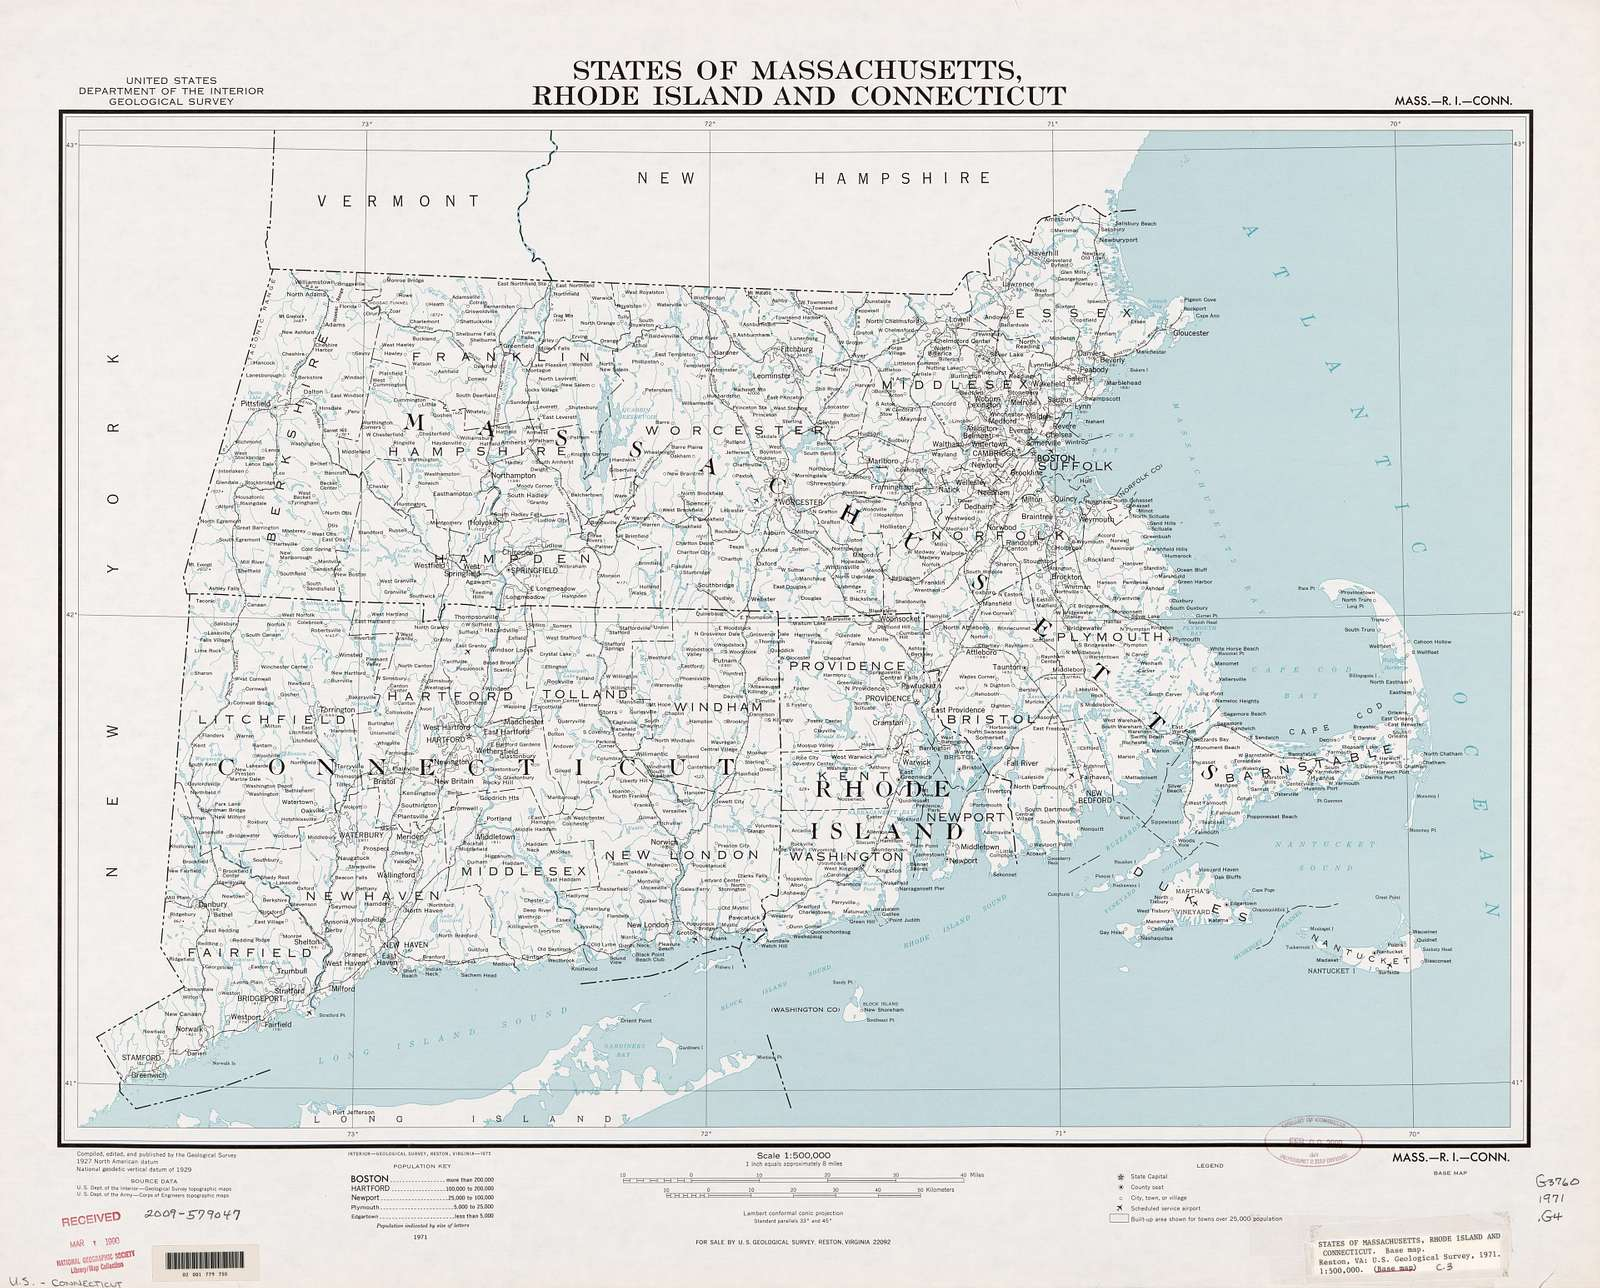 States of Massachusetts, Rhode Island, and Connecticut : base map /